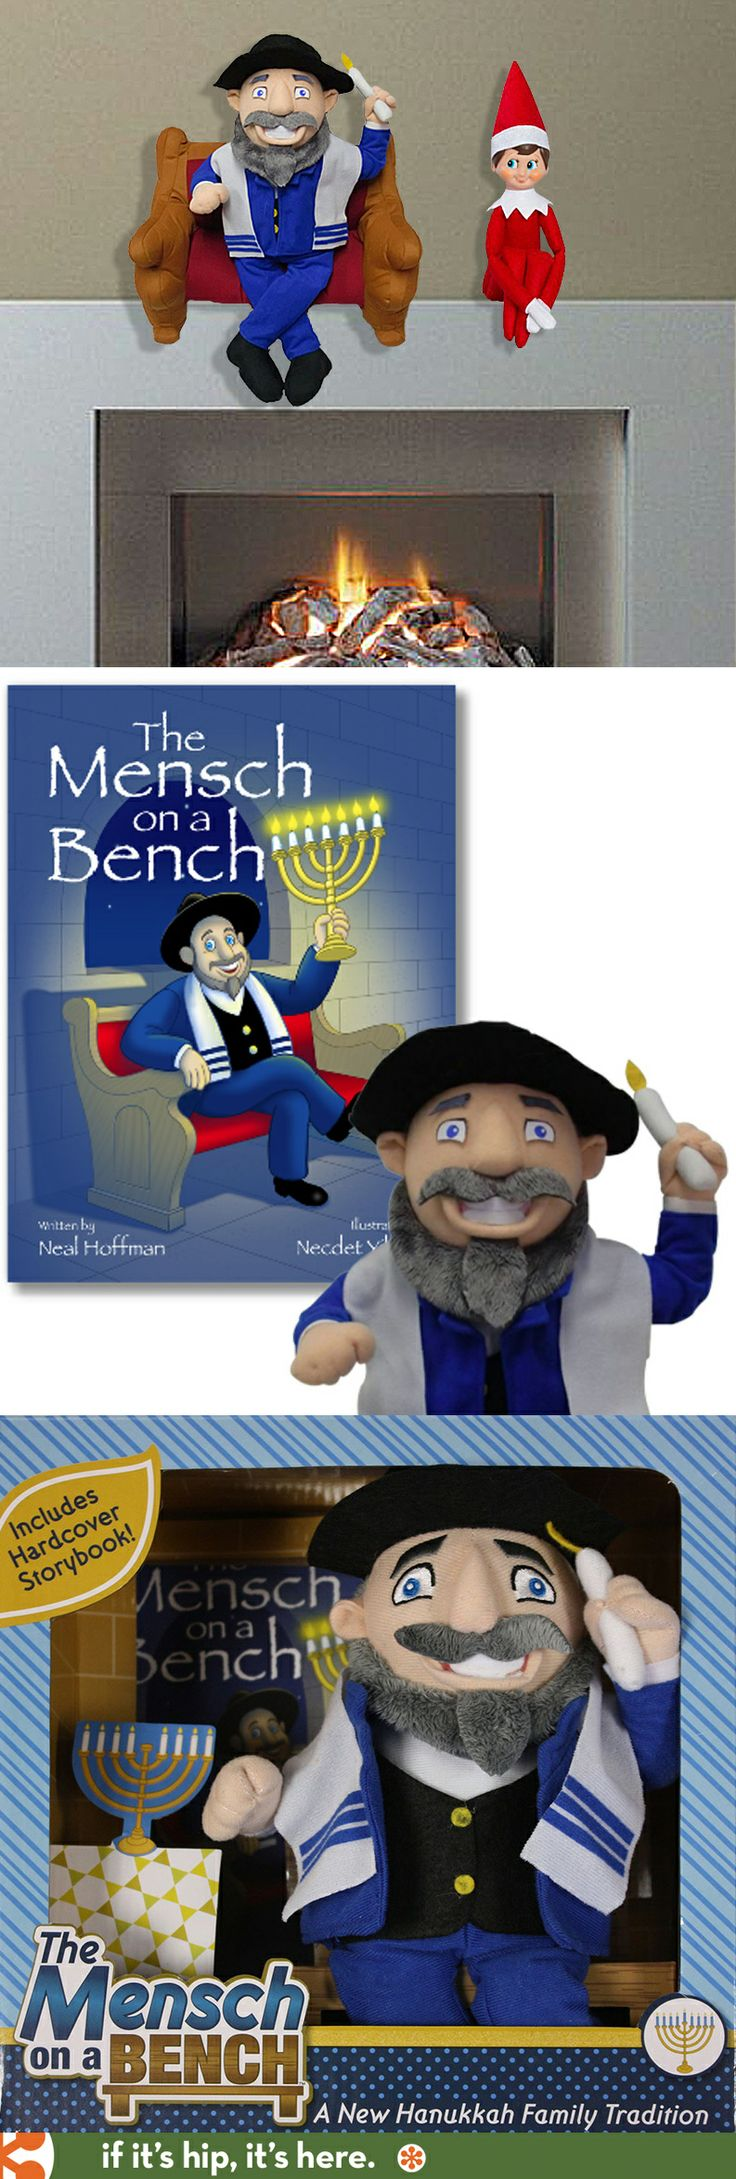 140 Best Images About Mensch On The Bench On Pinterest